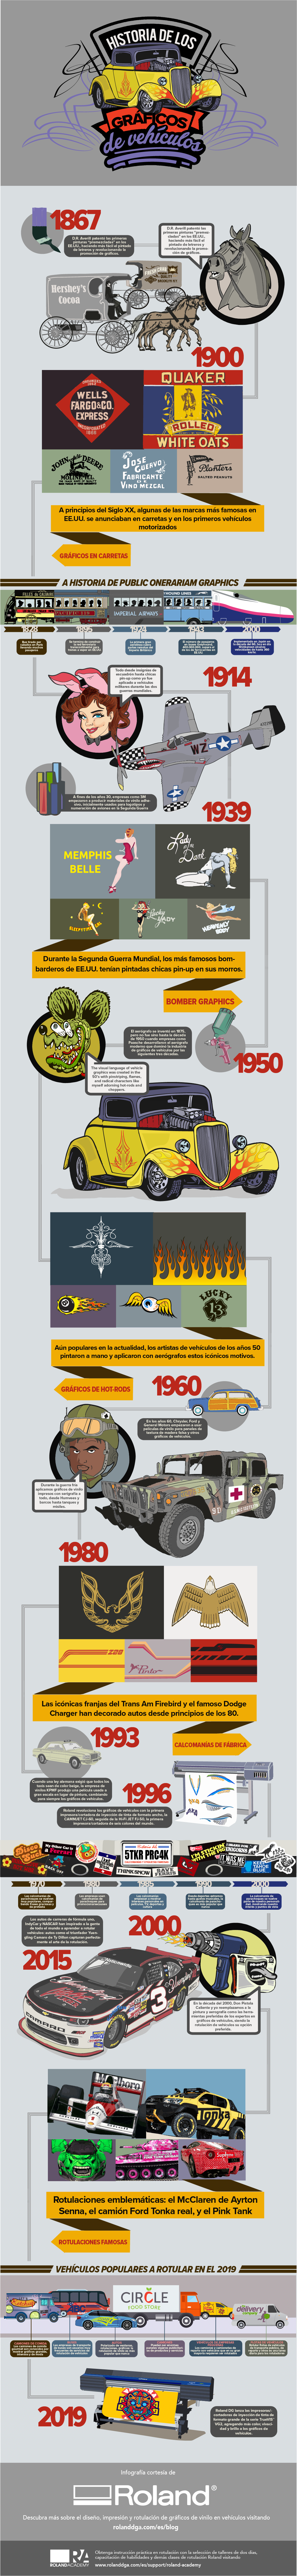 wrap vehiculum infographic